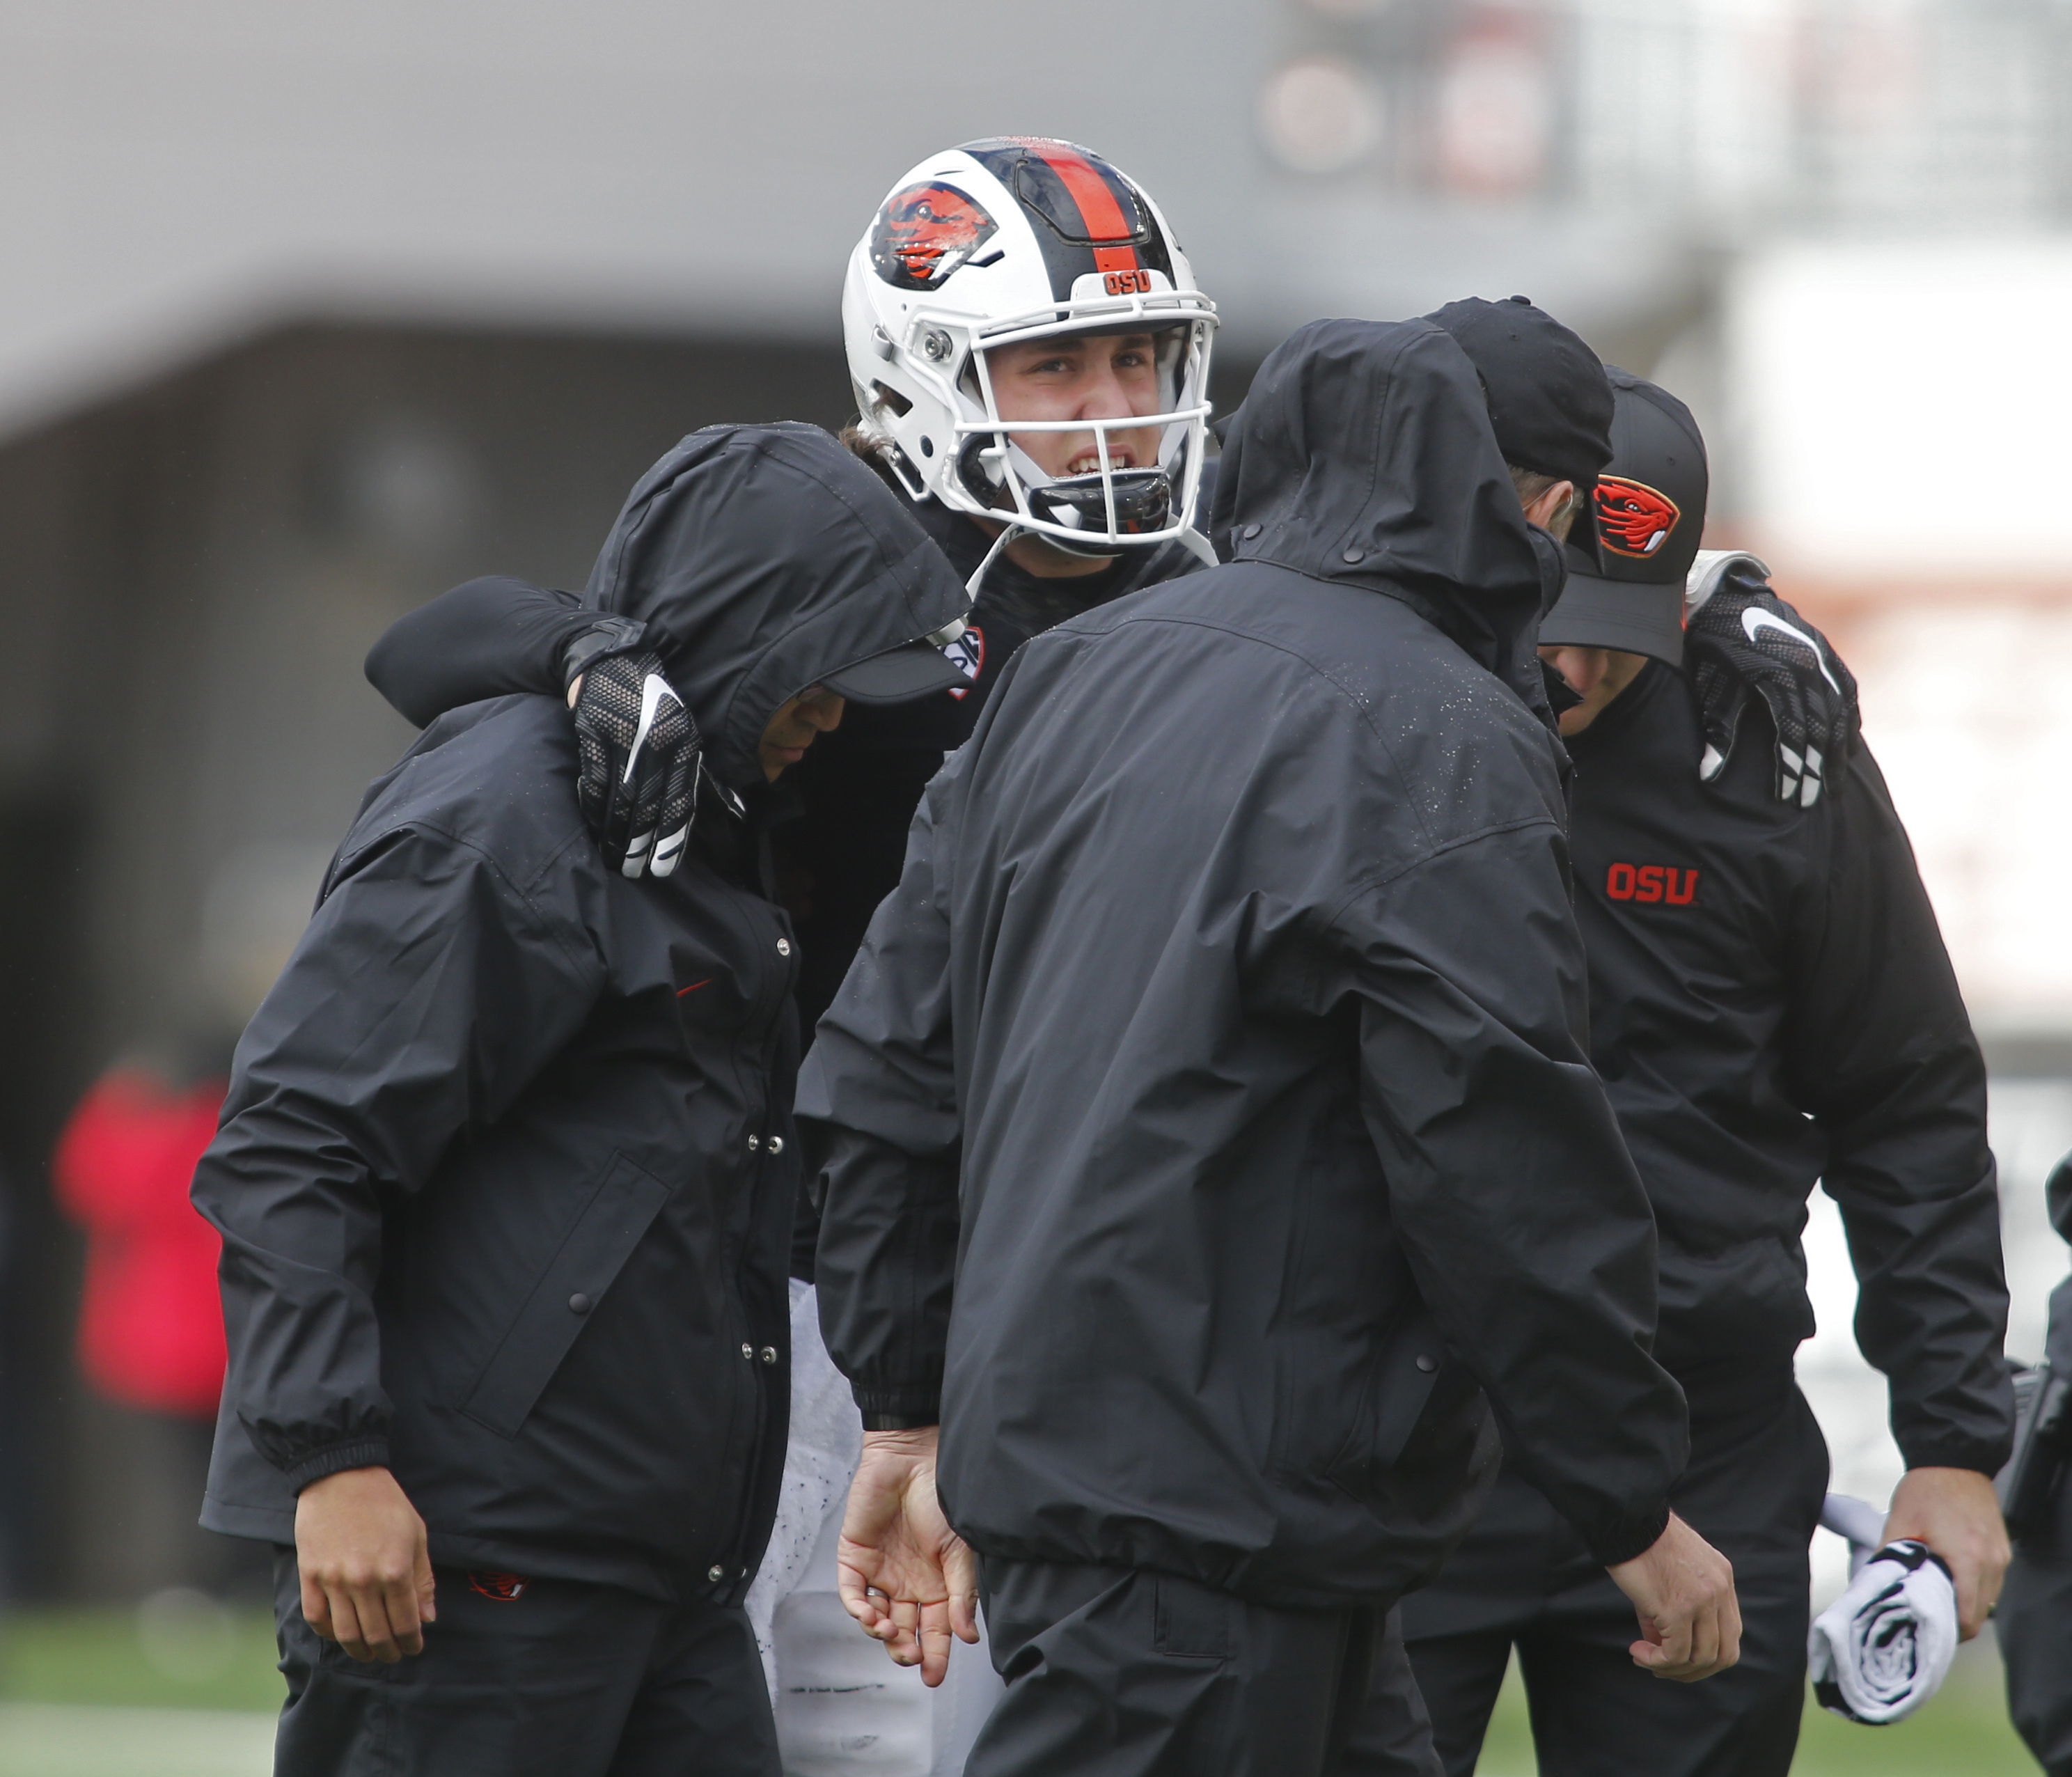 Oregon State starting quarterback Darell Garretson, center, is helped off the field after suffering an injury in the second half of an NCAA college football game against Utah, in Corvallis, Ore., on Saturday, Oct. 15, 2016. Utah won 19-14. (AP Photo/Timot